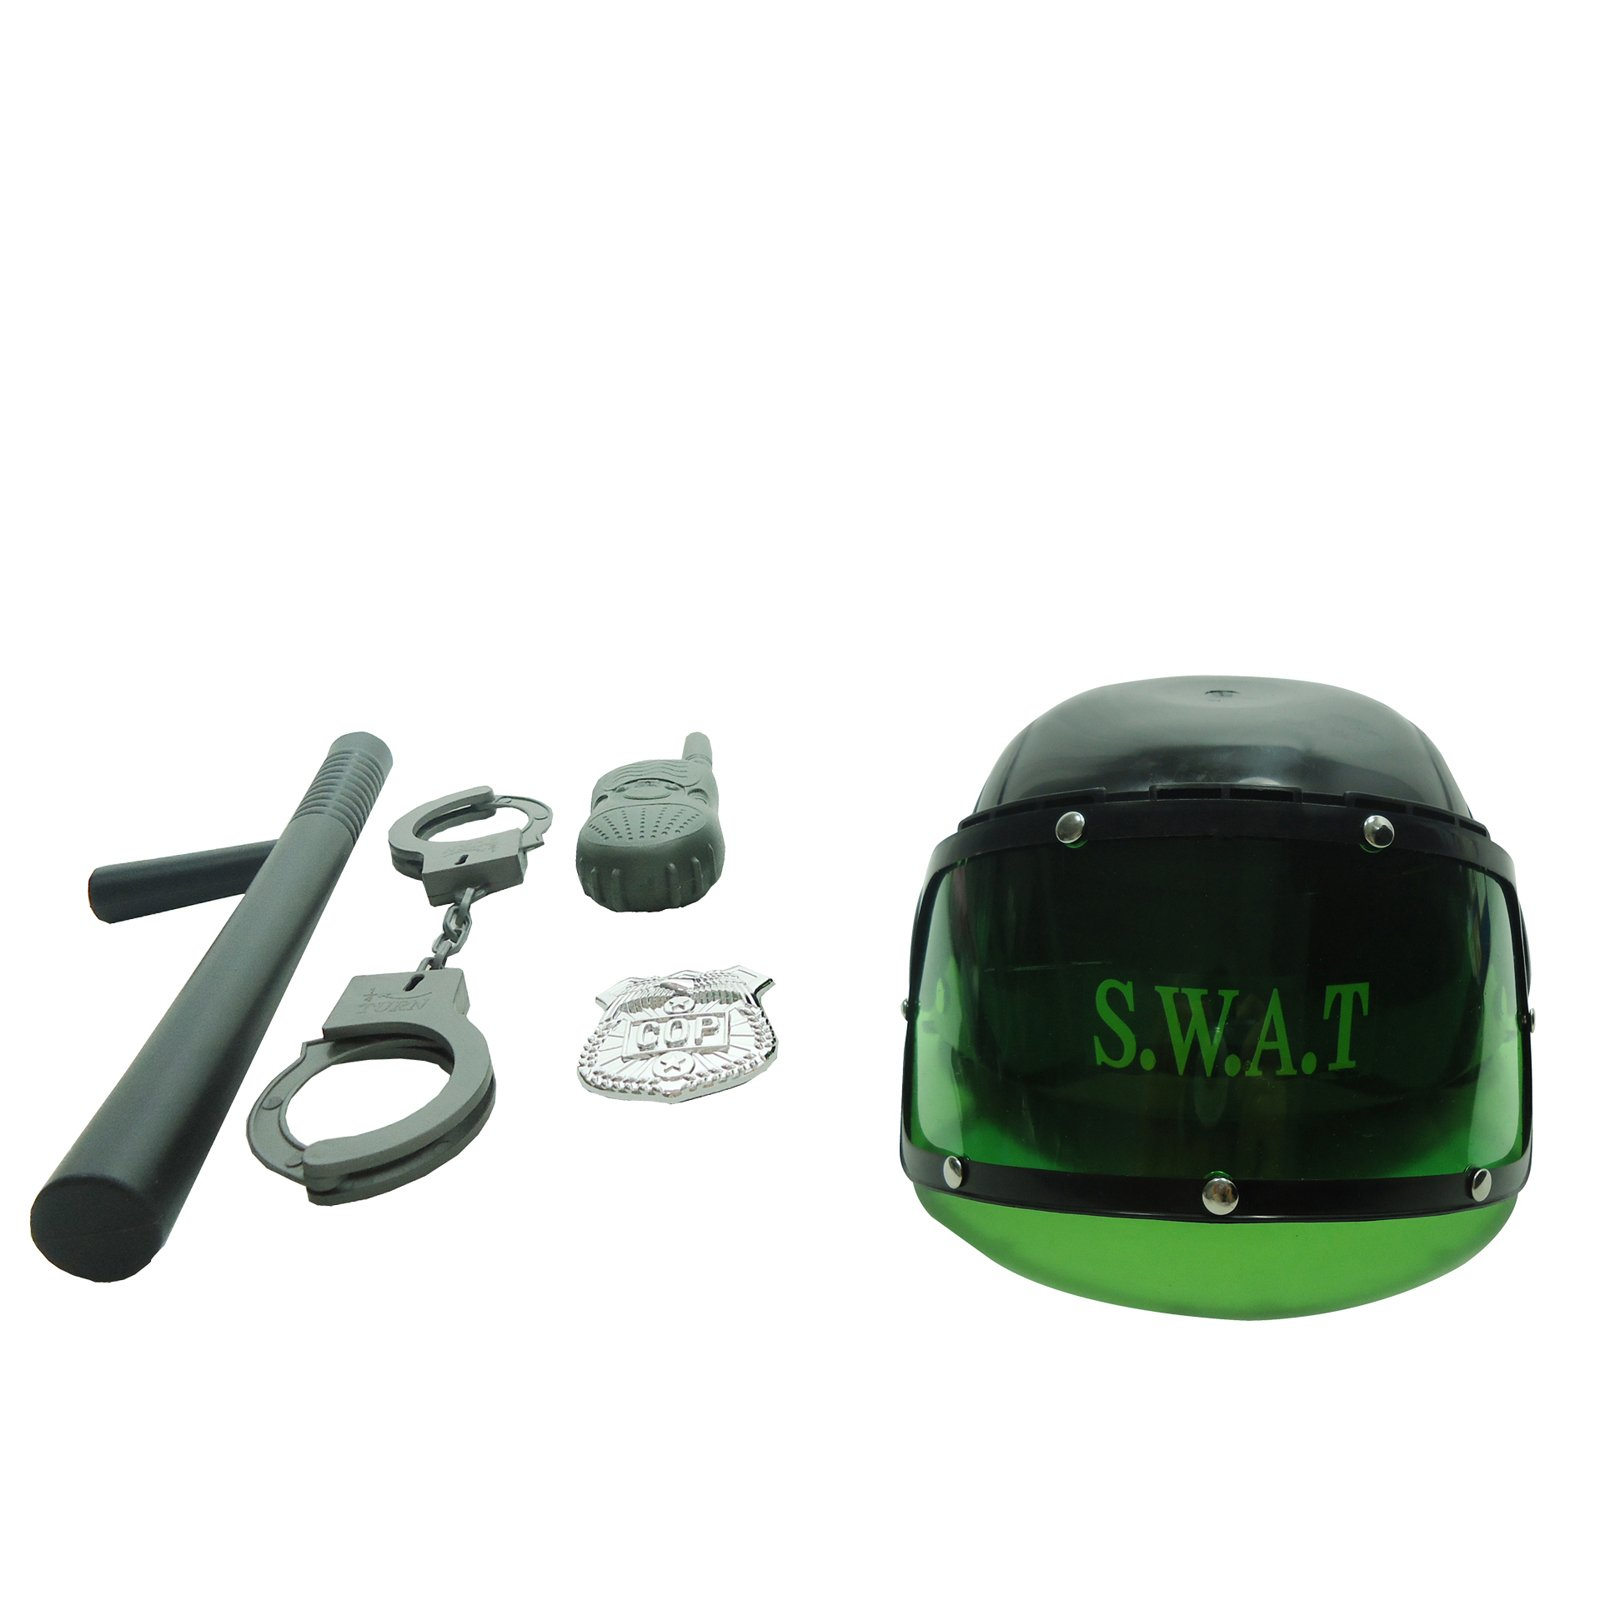 Combat Swat Helmet Play Set with Accessories